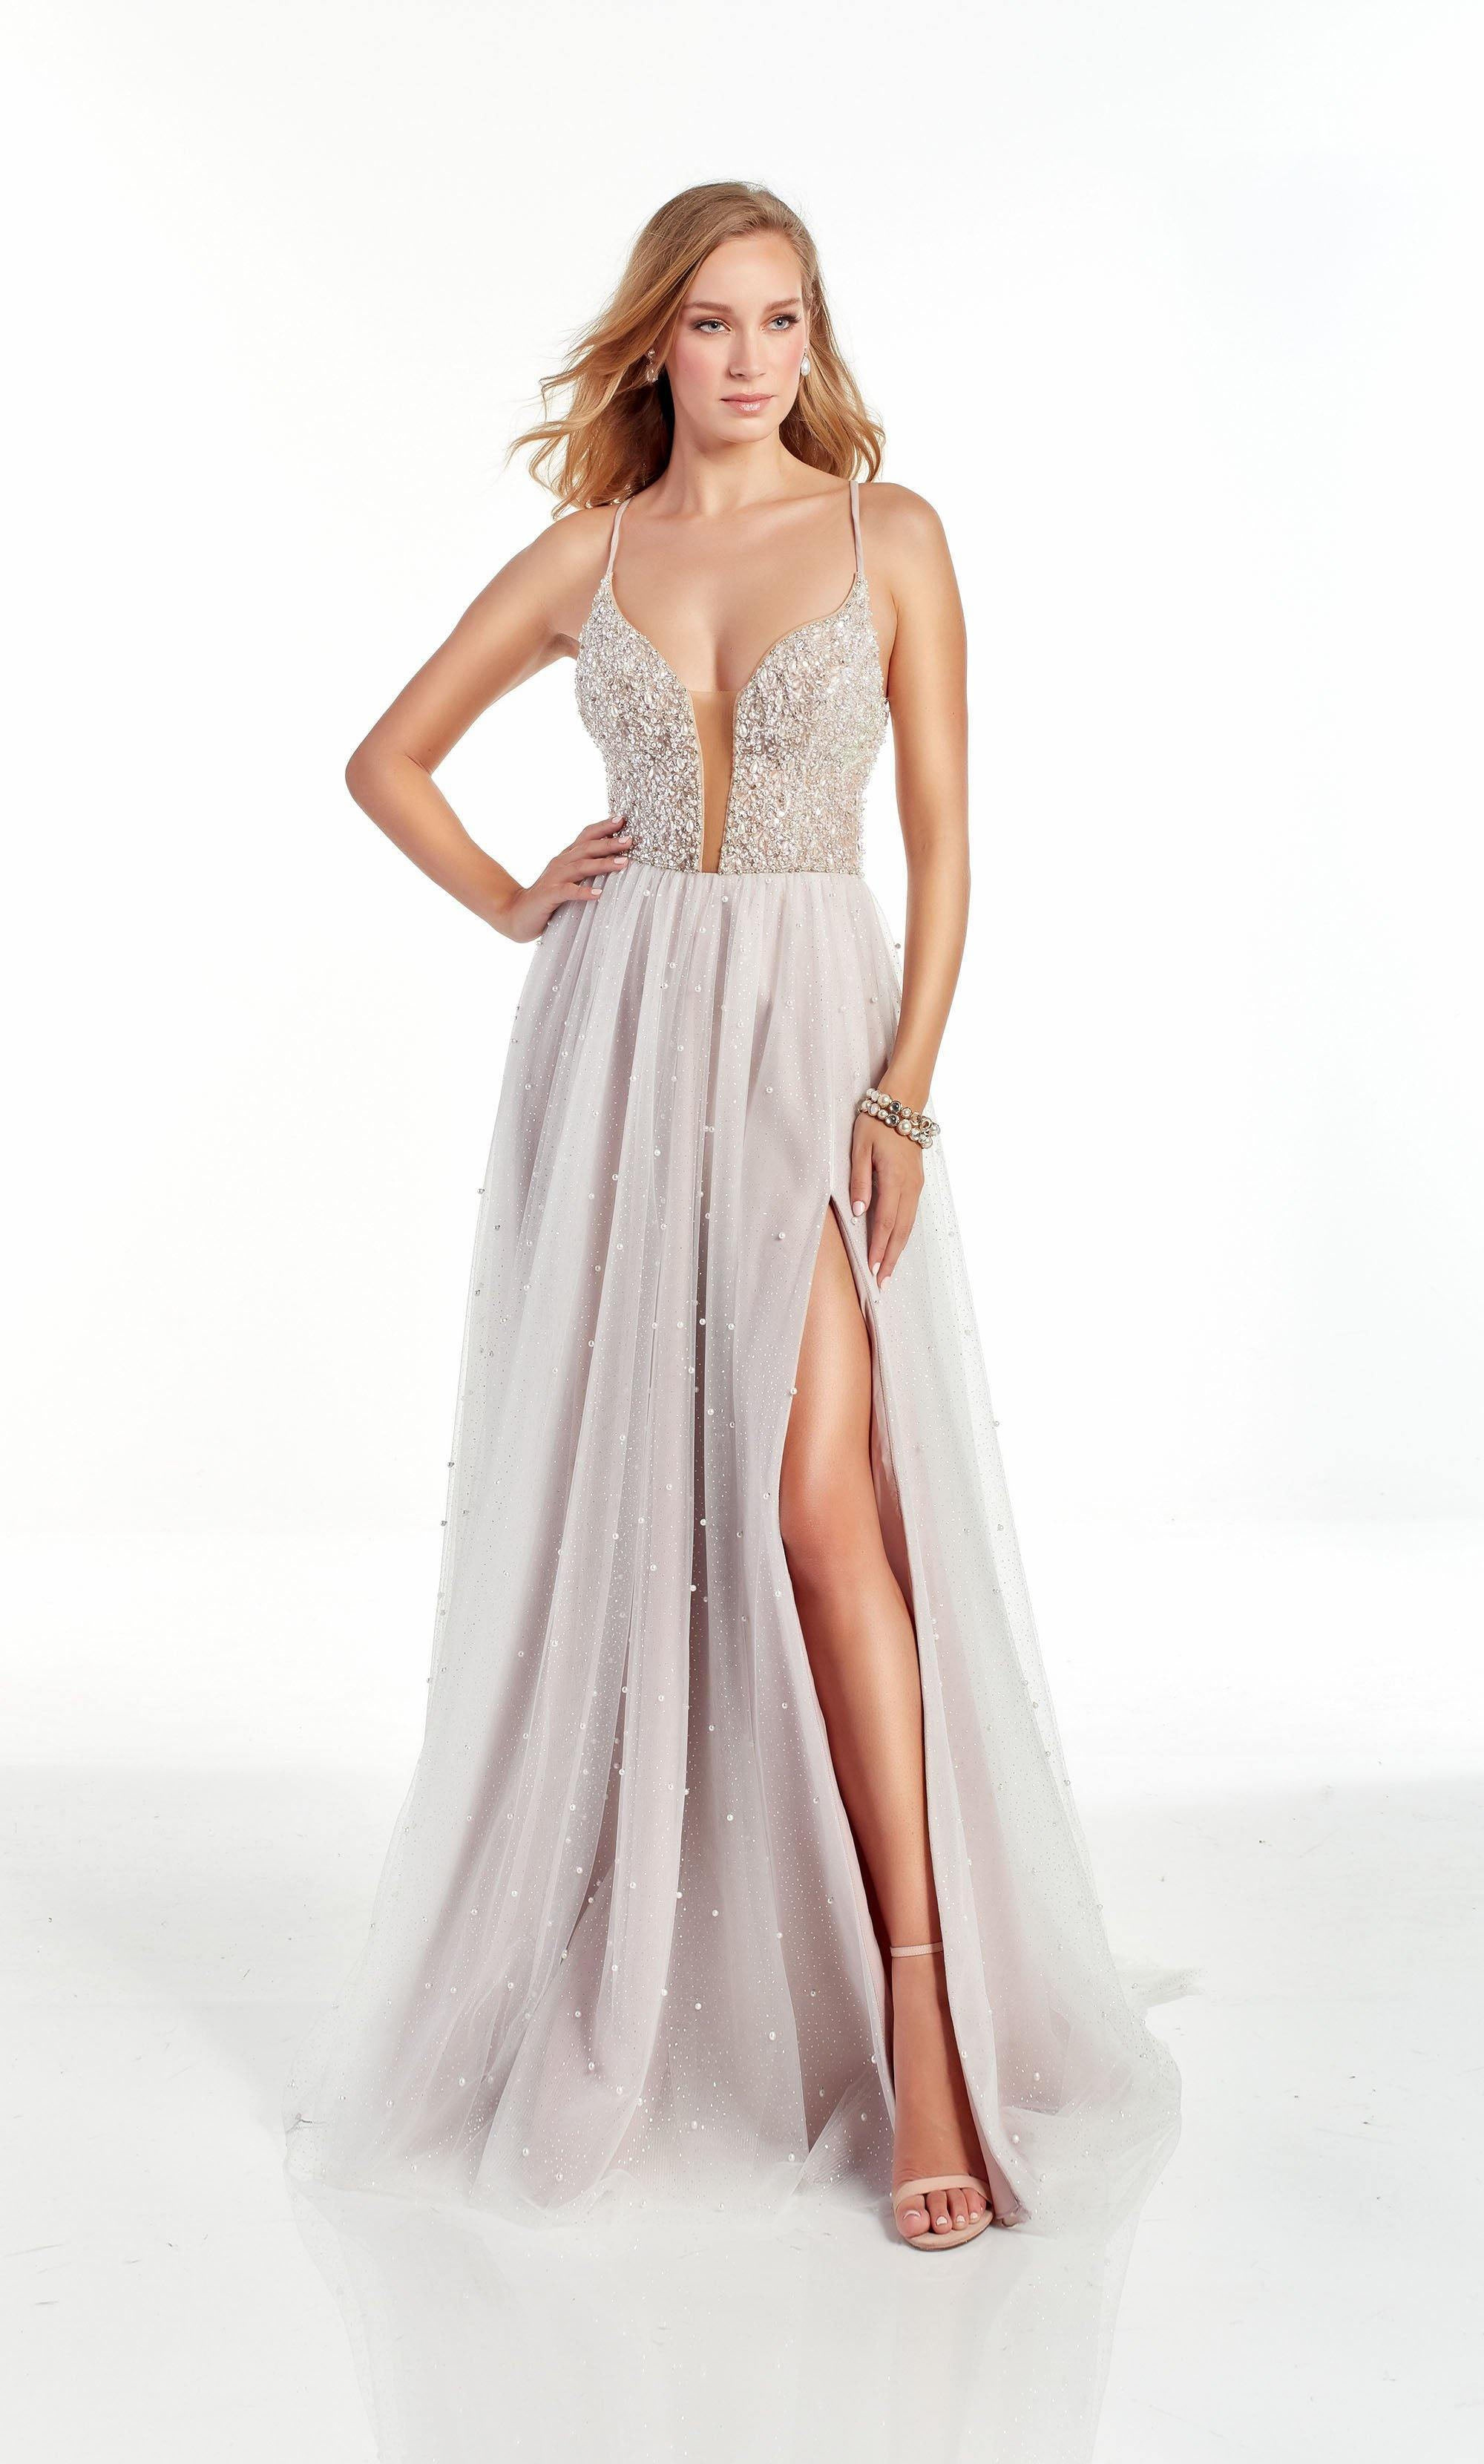 Diamond White-Rose fully embellished formal dress with a plunging neckline and high slit